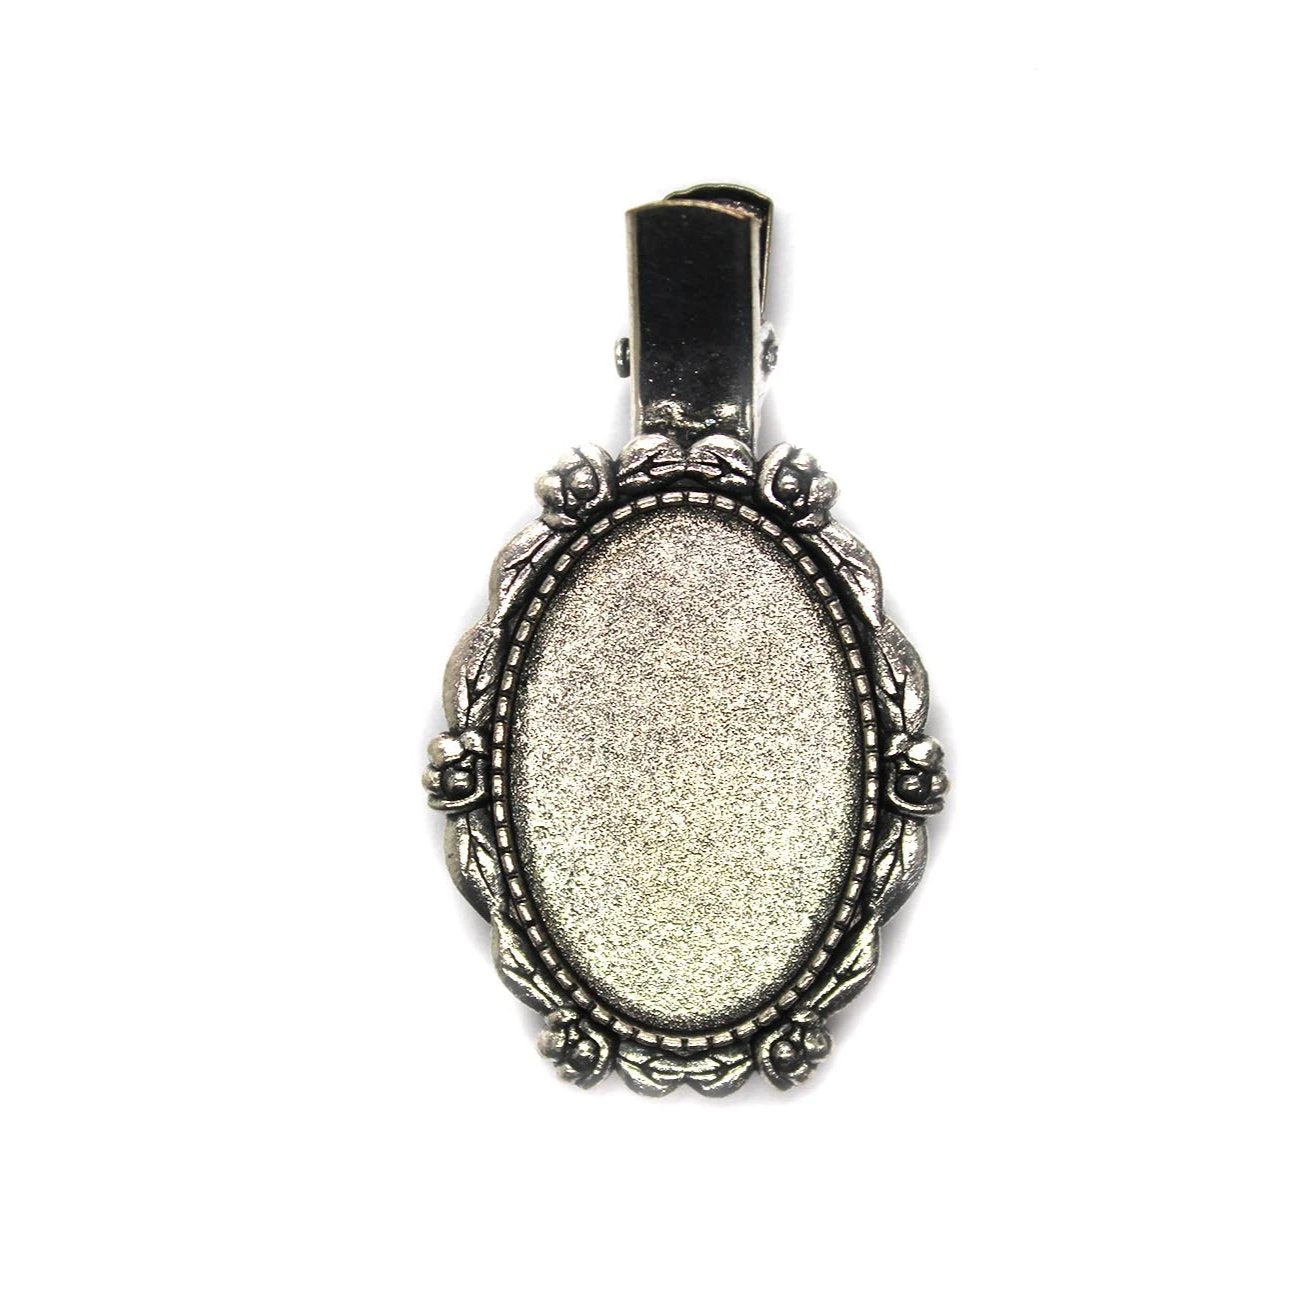 Glue On Bezel Barrette, Antique Silver, Alloy, 51mm X 30mm, 1pc